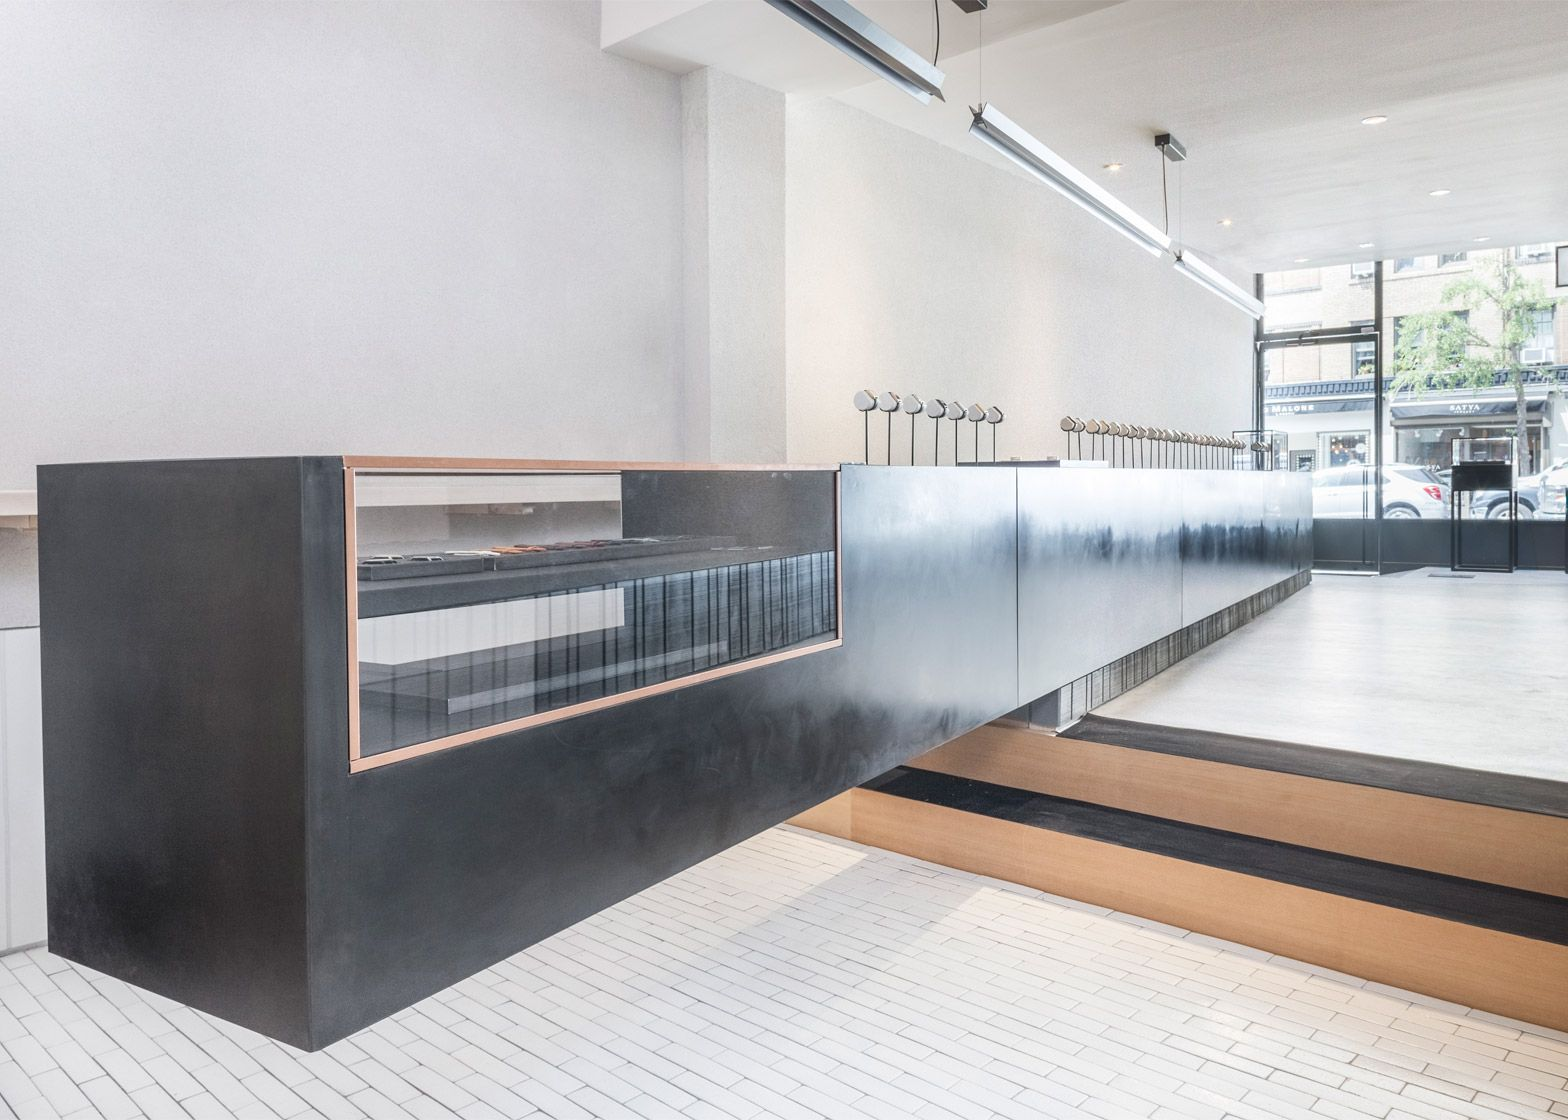 London creative agency Studio Mills has completed a Manhattan store for online watch brand Larsson & Jennings, featuring a cantilevered display counter and a bar serving typical Swedish refreshments.